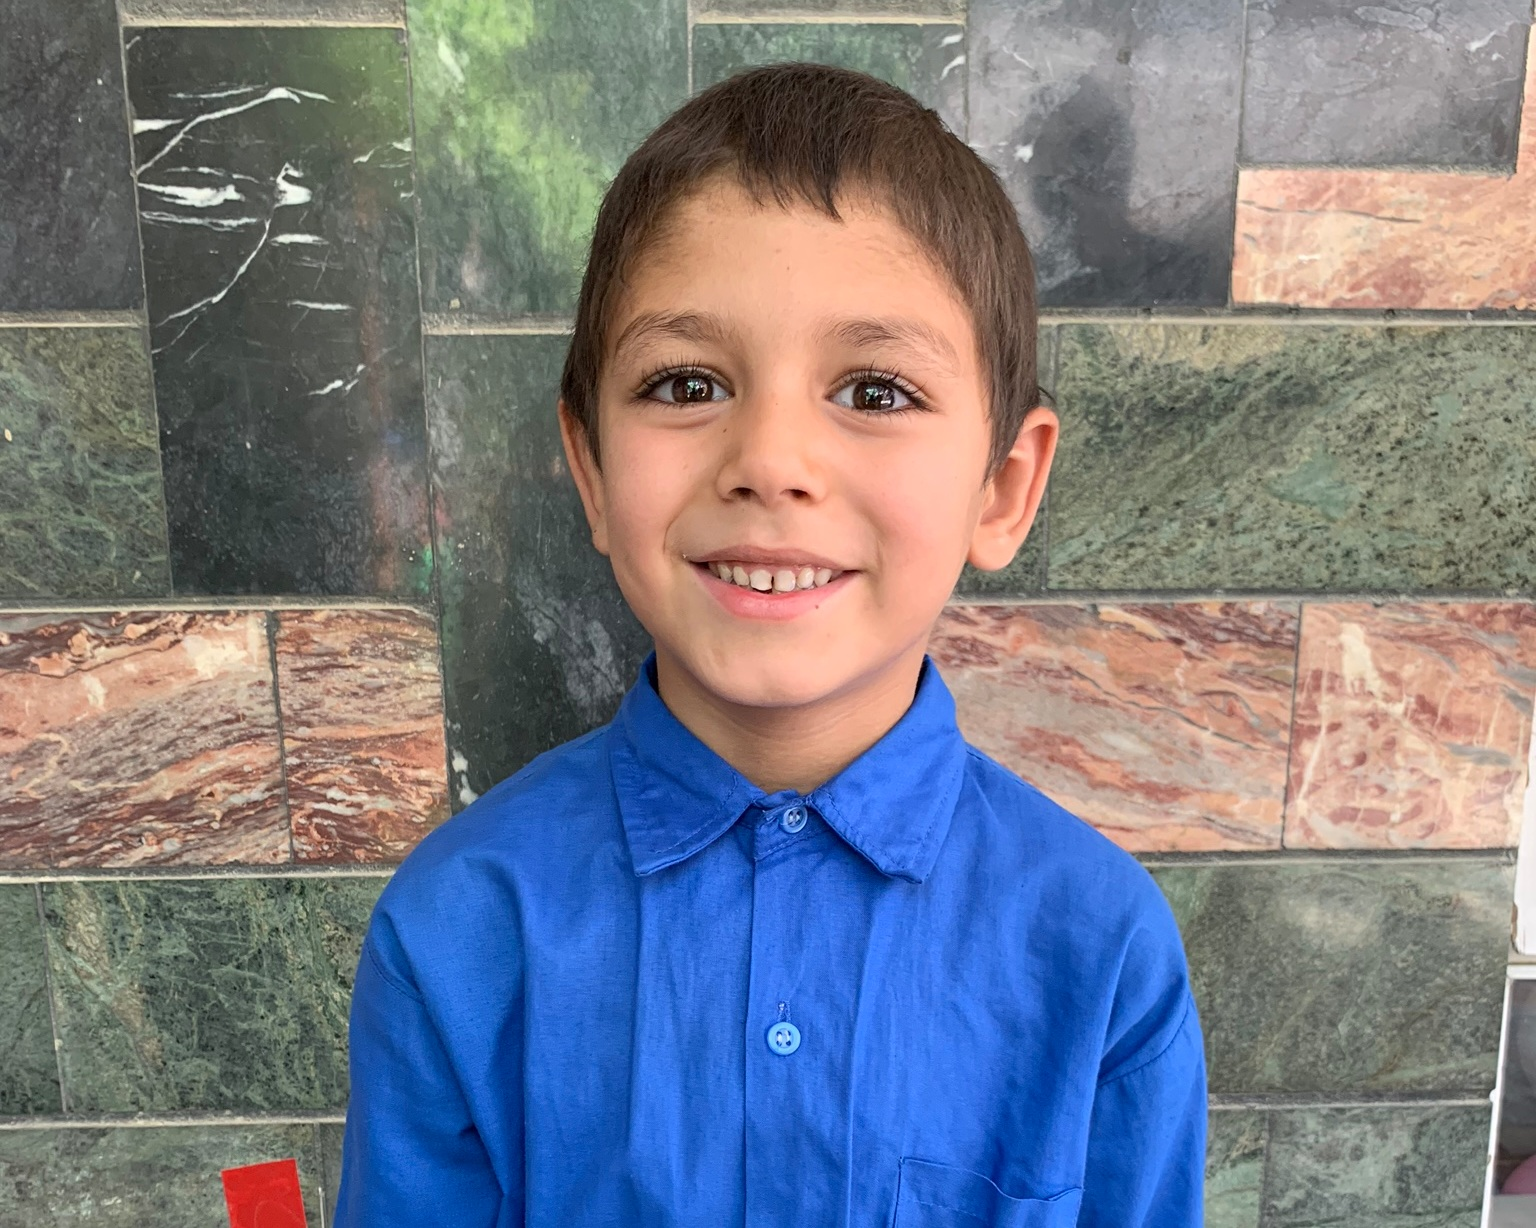 Mohammad Yosof, Age 8 - Mohammad Yosof has three siblings. His Mother his currently unemployed. His Father is a Tailor.BE MOHAMMAD YOSOF'S PARTNER>